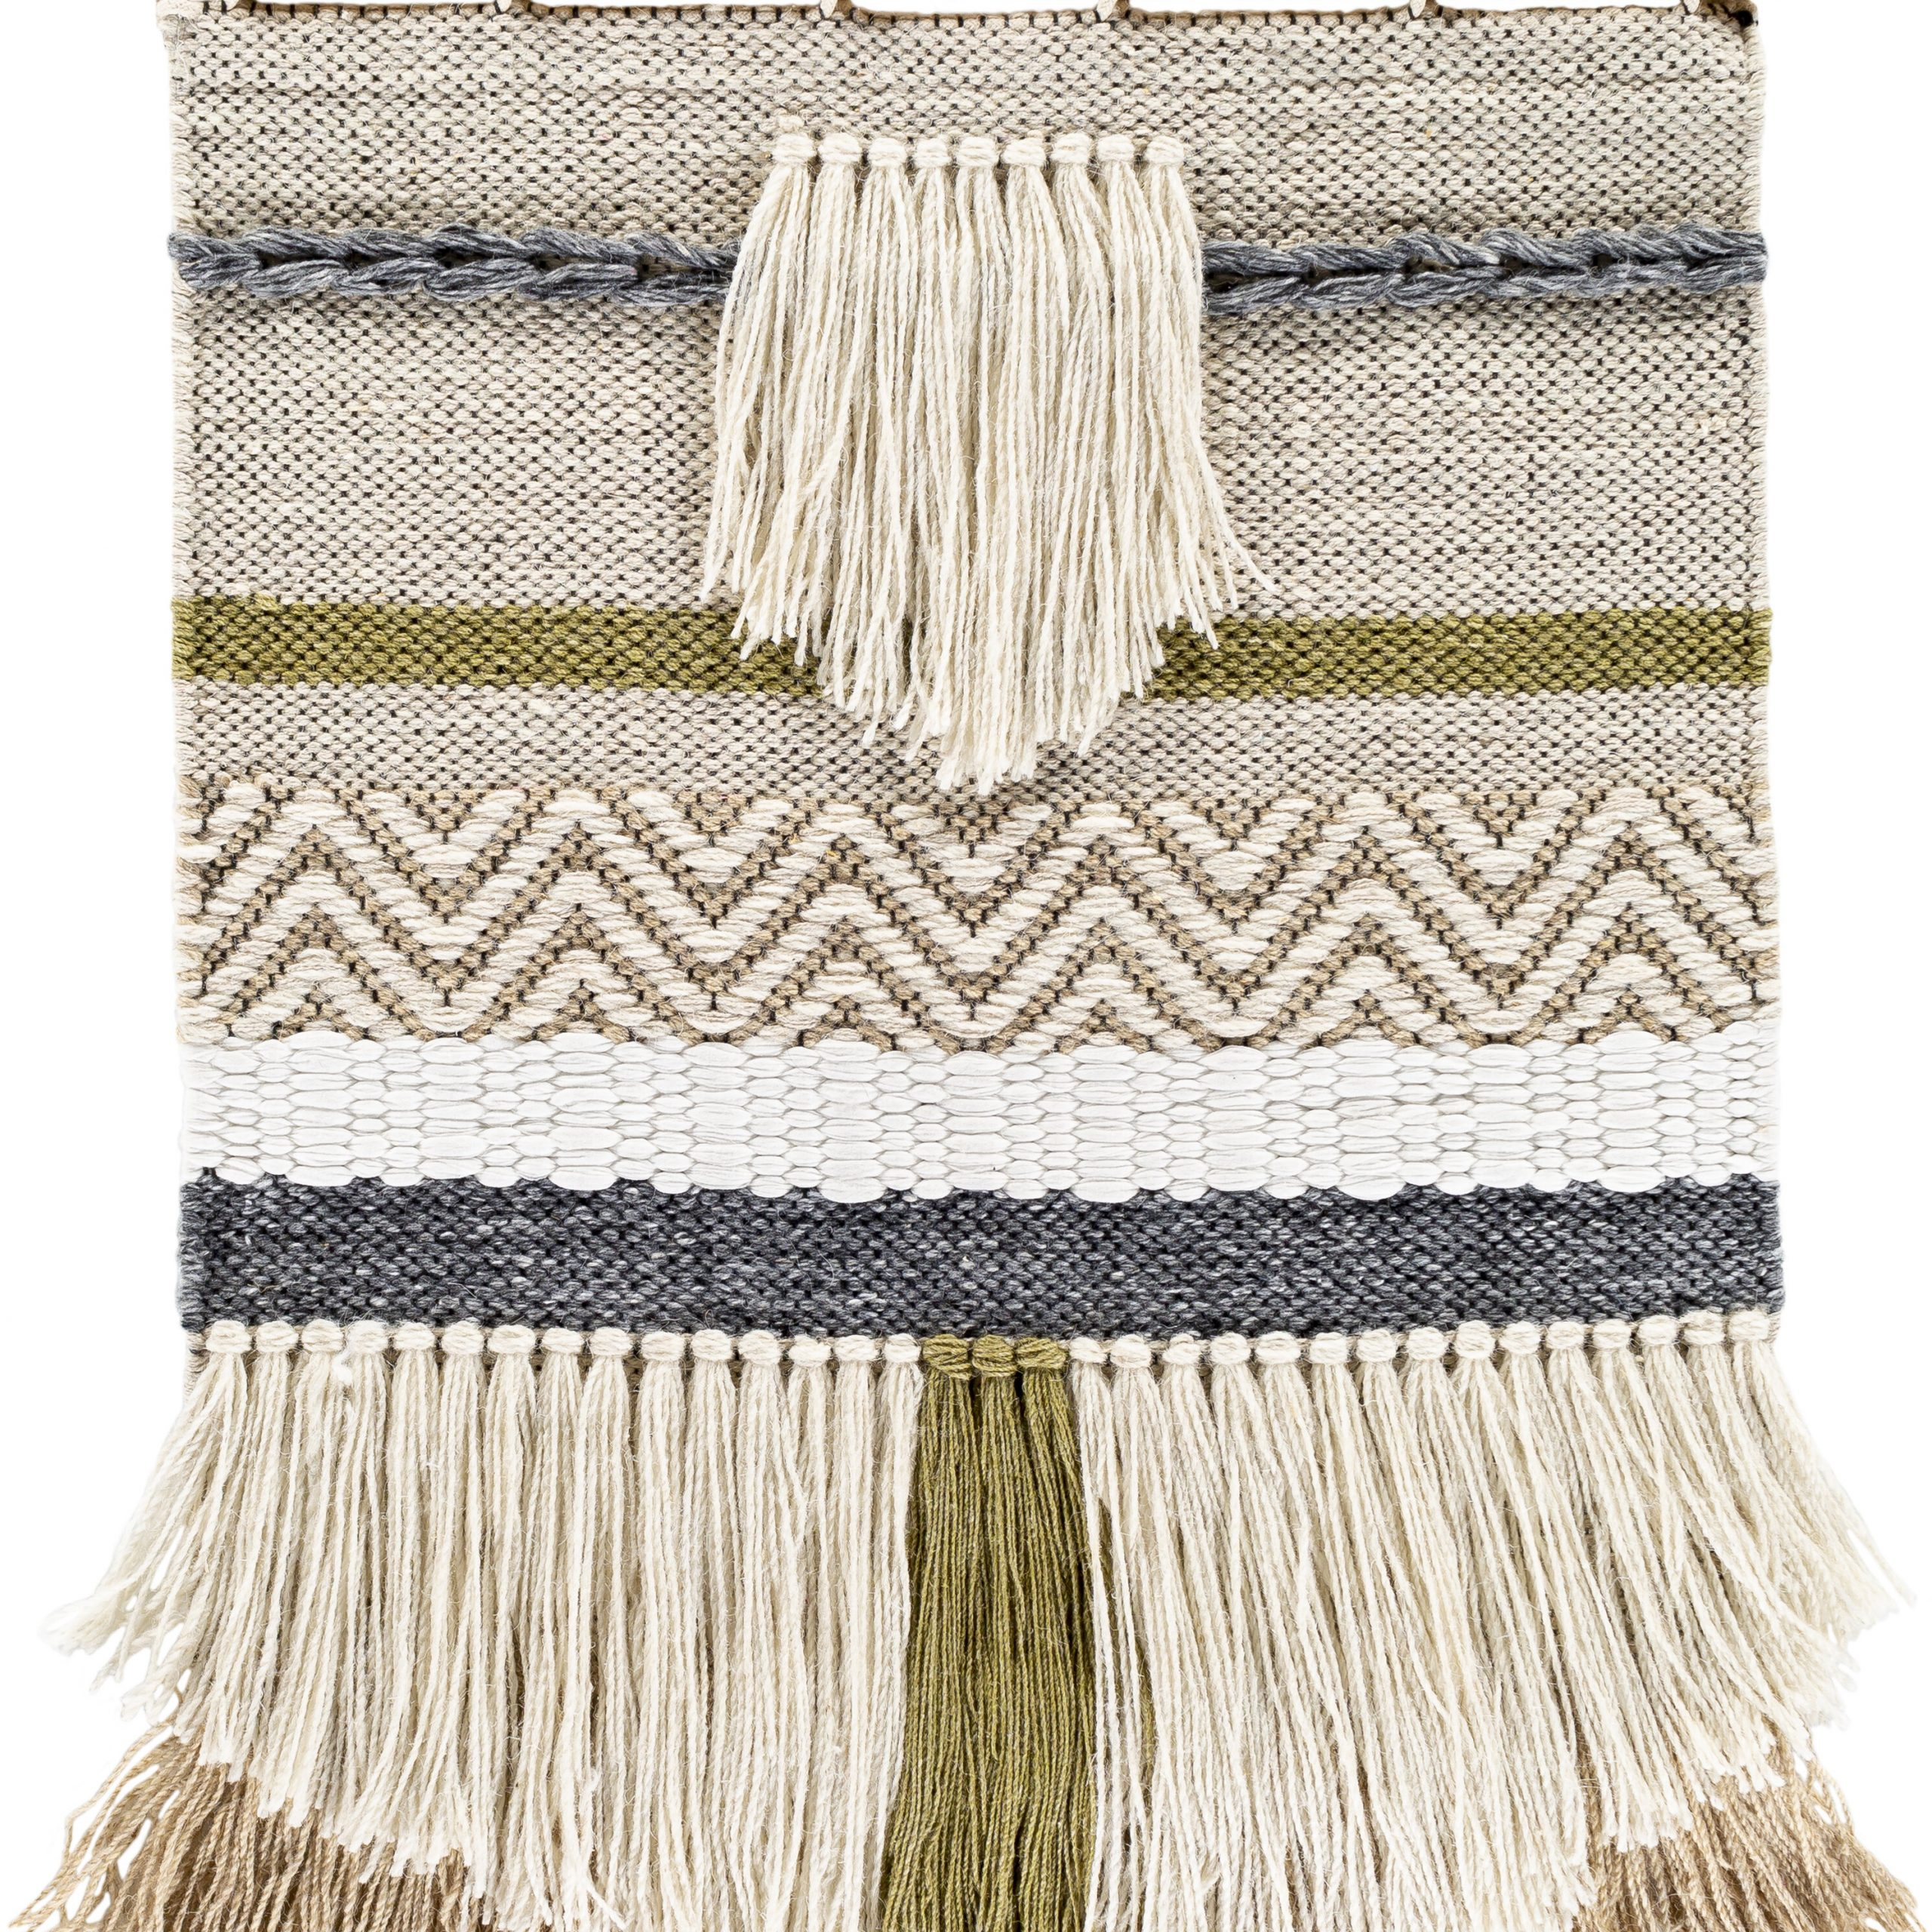 Arabic Art Tapestries You'll Love In 2021 | Wayfair Within Most Current Blended Fabric Breeze Of Admiration Woven Tapestries (View 10 of 20)